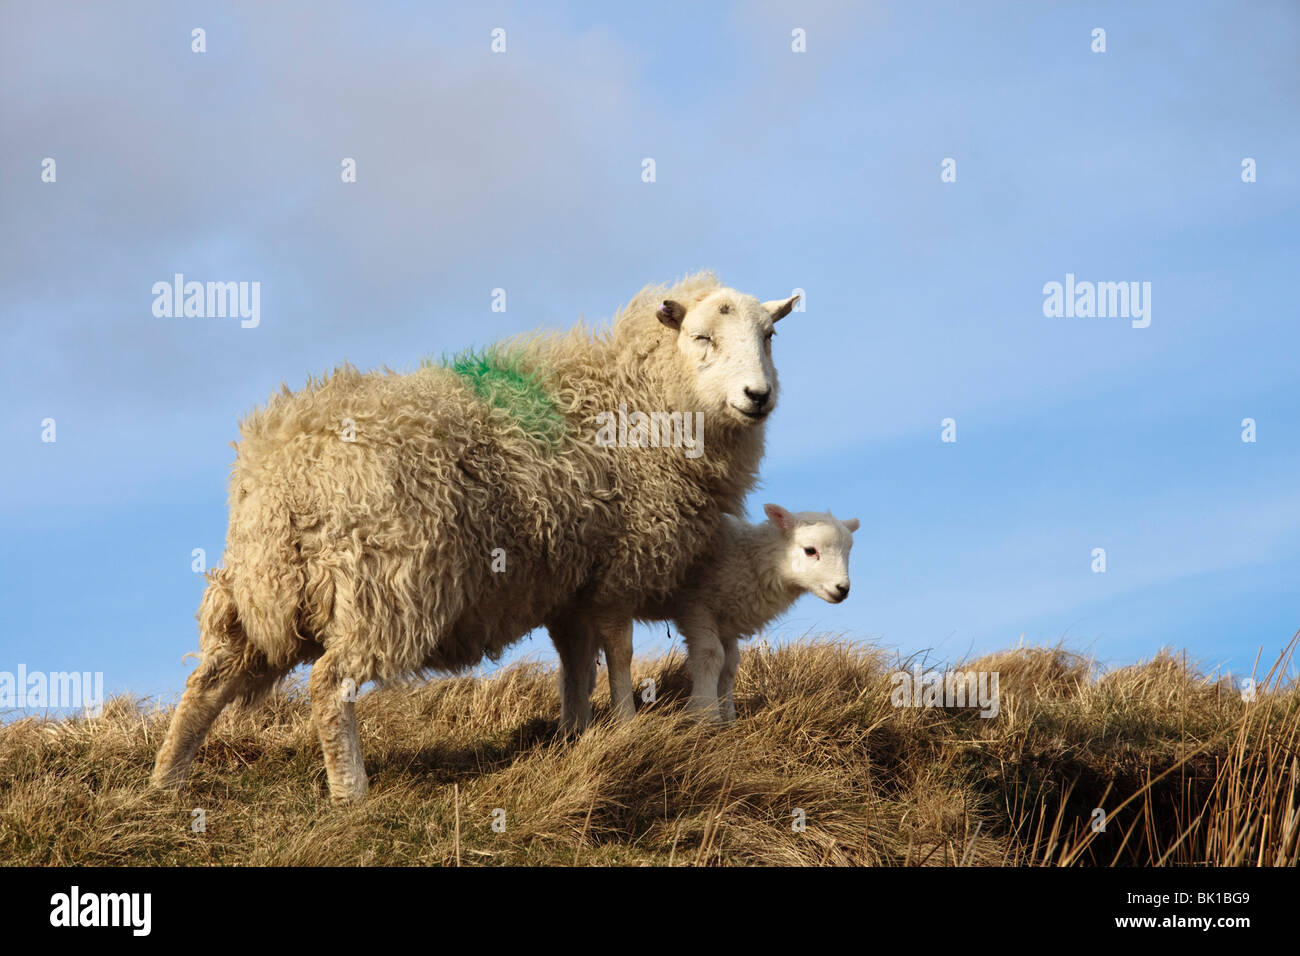 Ewe with spring lamb, Mid Wales - Stock Image